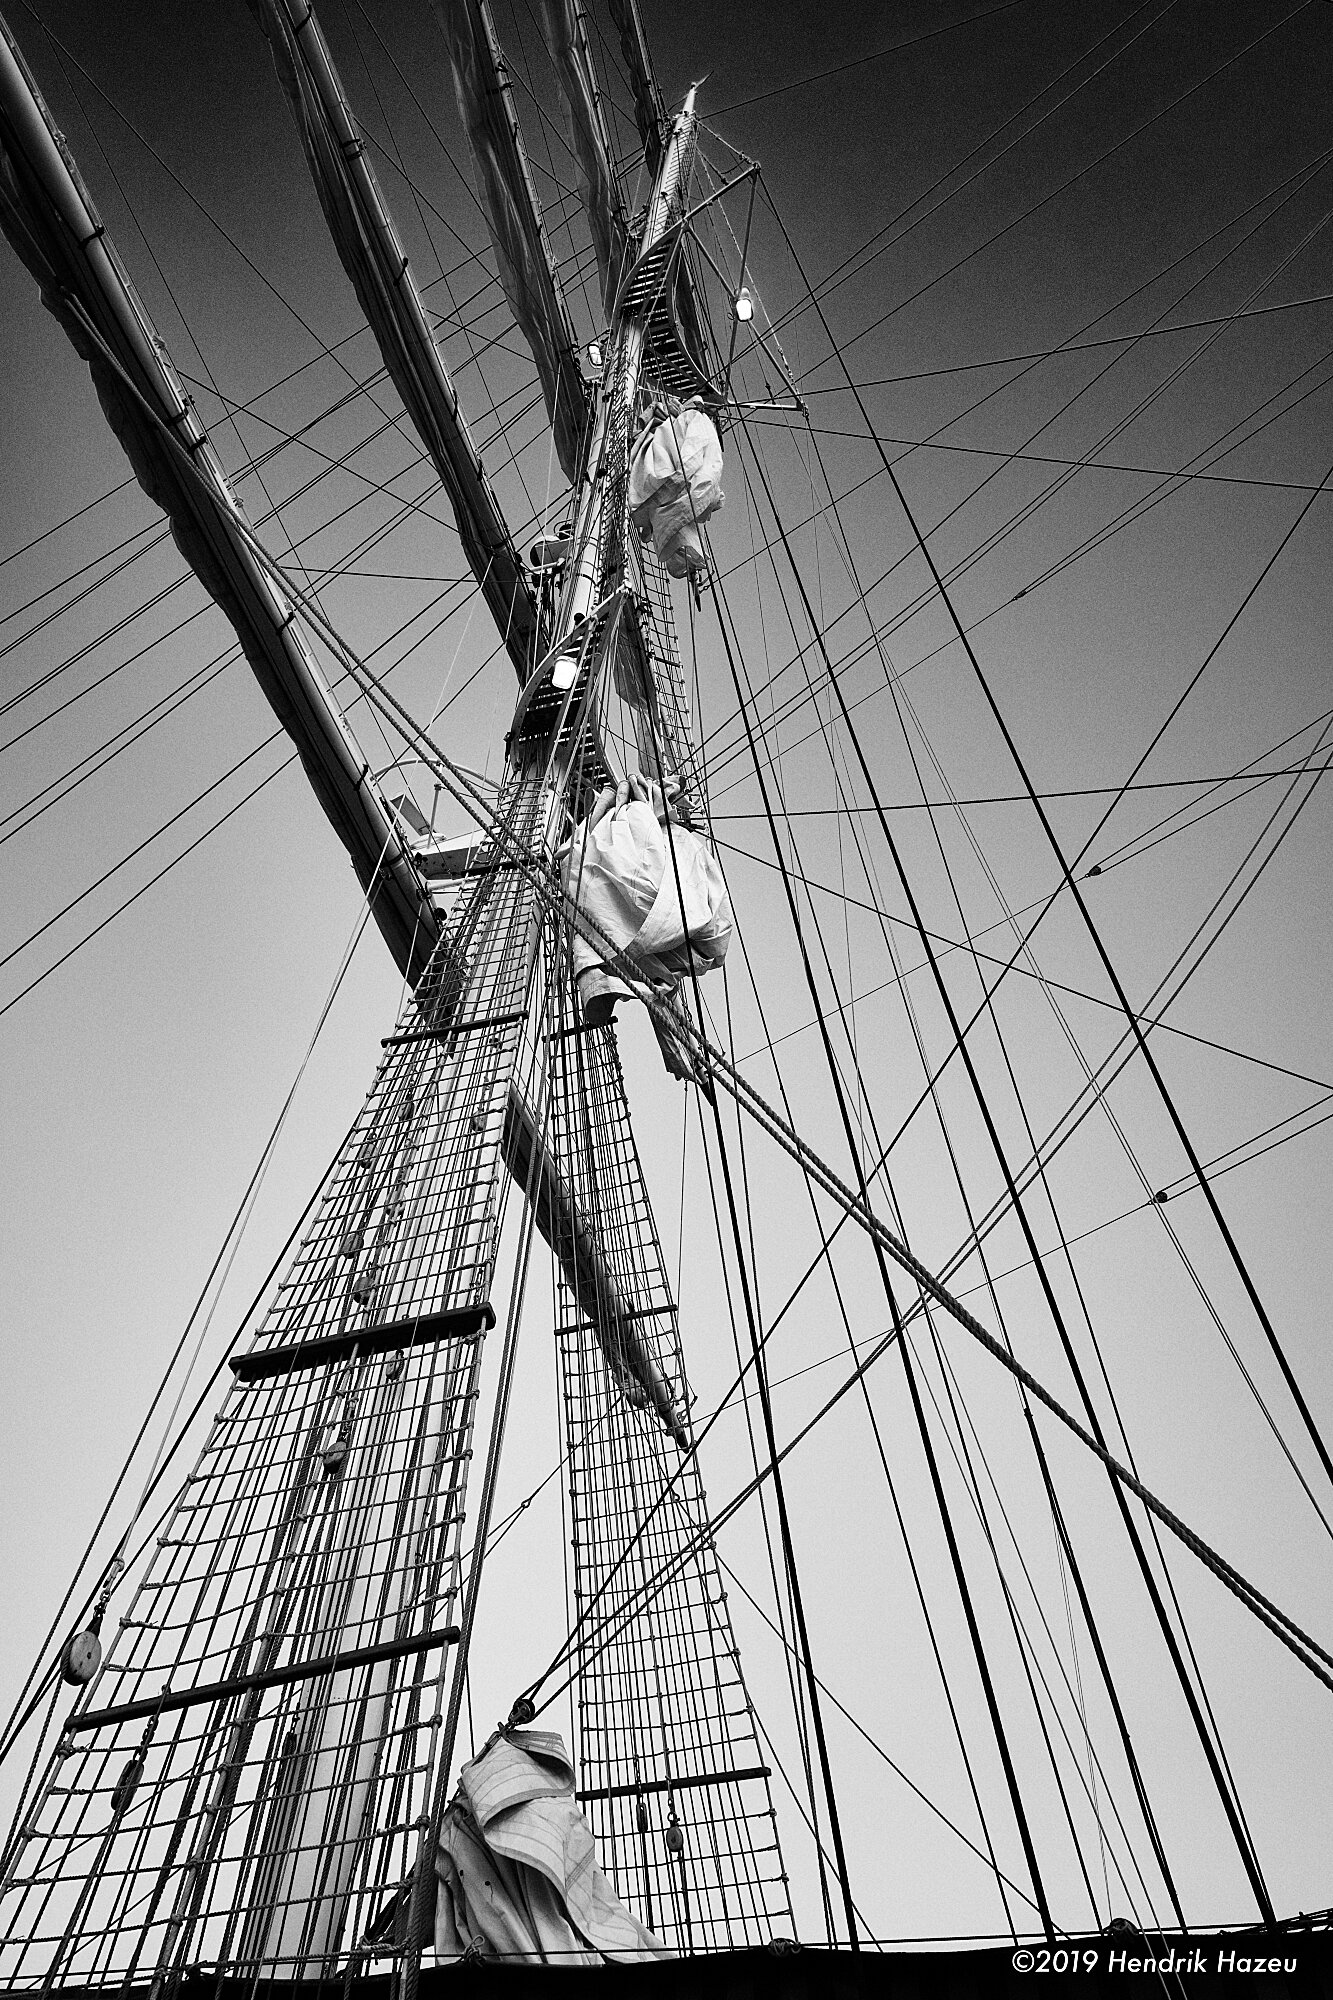 Schooner mast and rigging just before dawn, X-Pro2 & XF 18mm F/2 @F/8, 1/60 sec, ISO 200